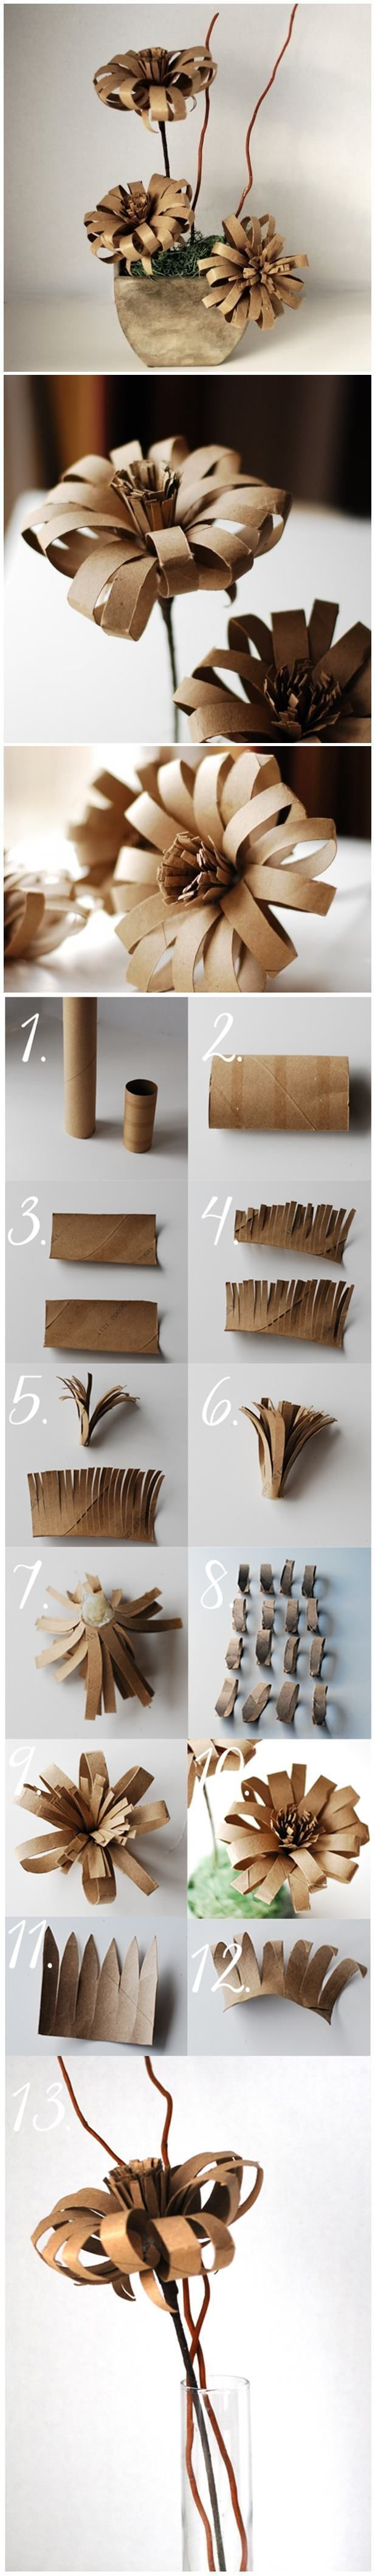 23 Amazing Things You Can Make From Toilet Paper Rolls… I'm Trying #11 Today. - http://www.lifebuzz.com/toilet-paper/